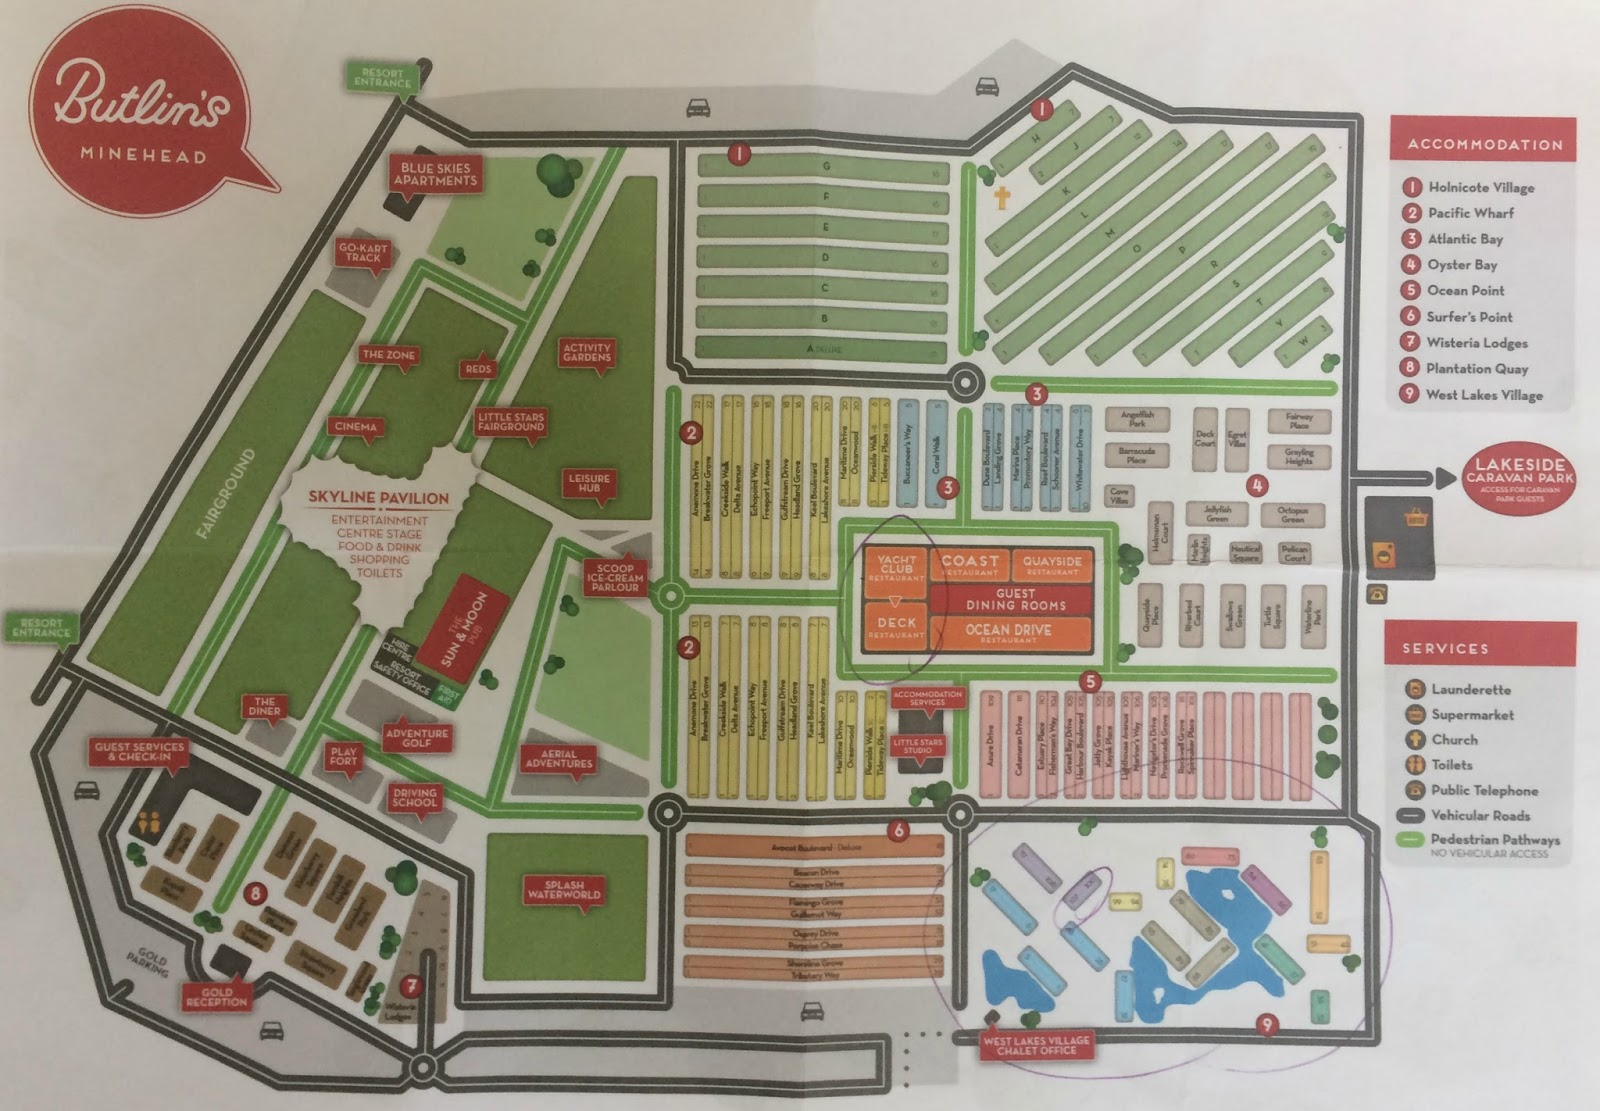 Butlins Minehead site map